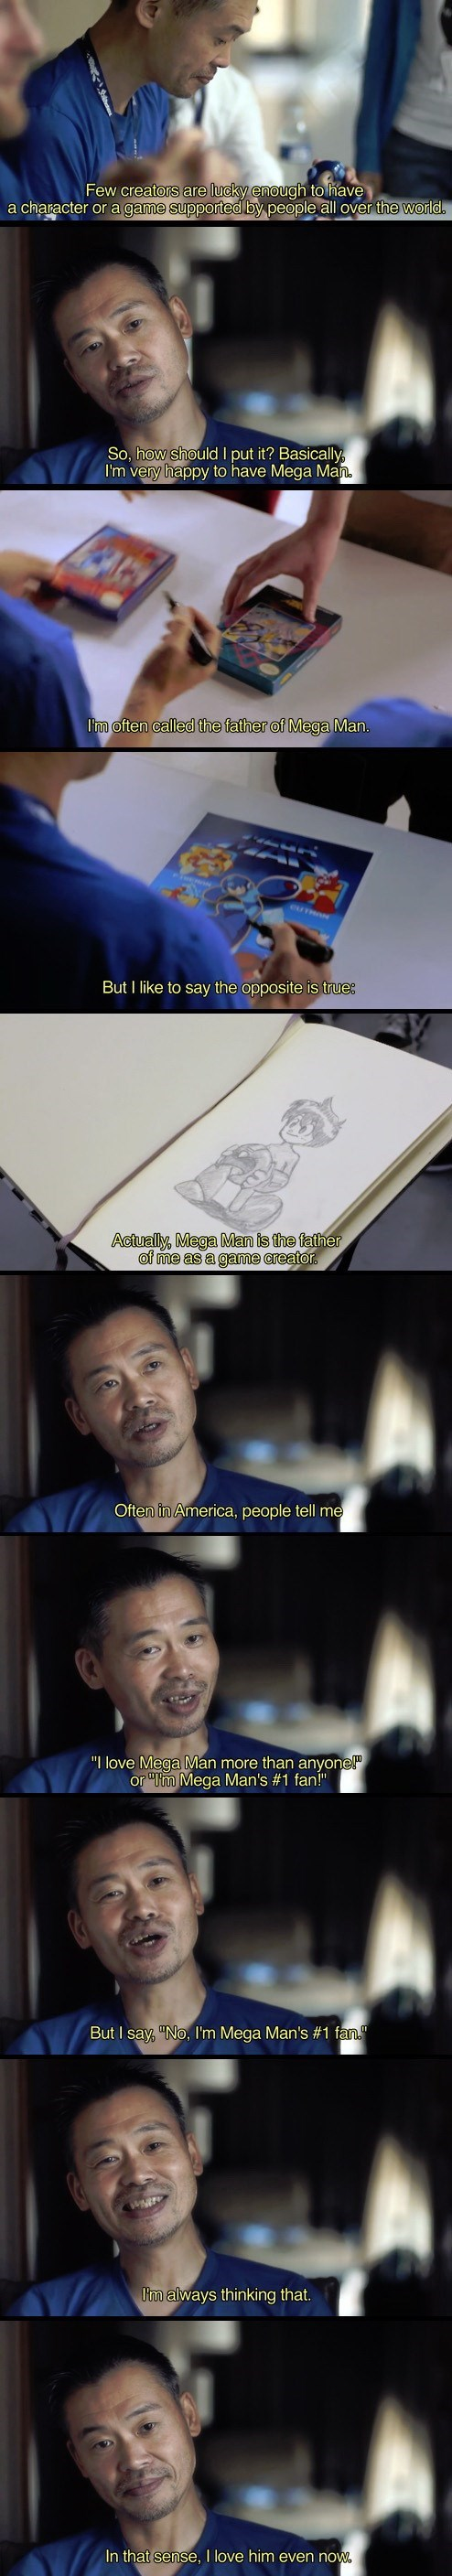 awesome,mega man,Keiji Inafune,developers